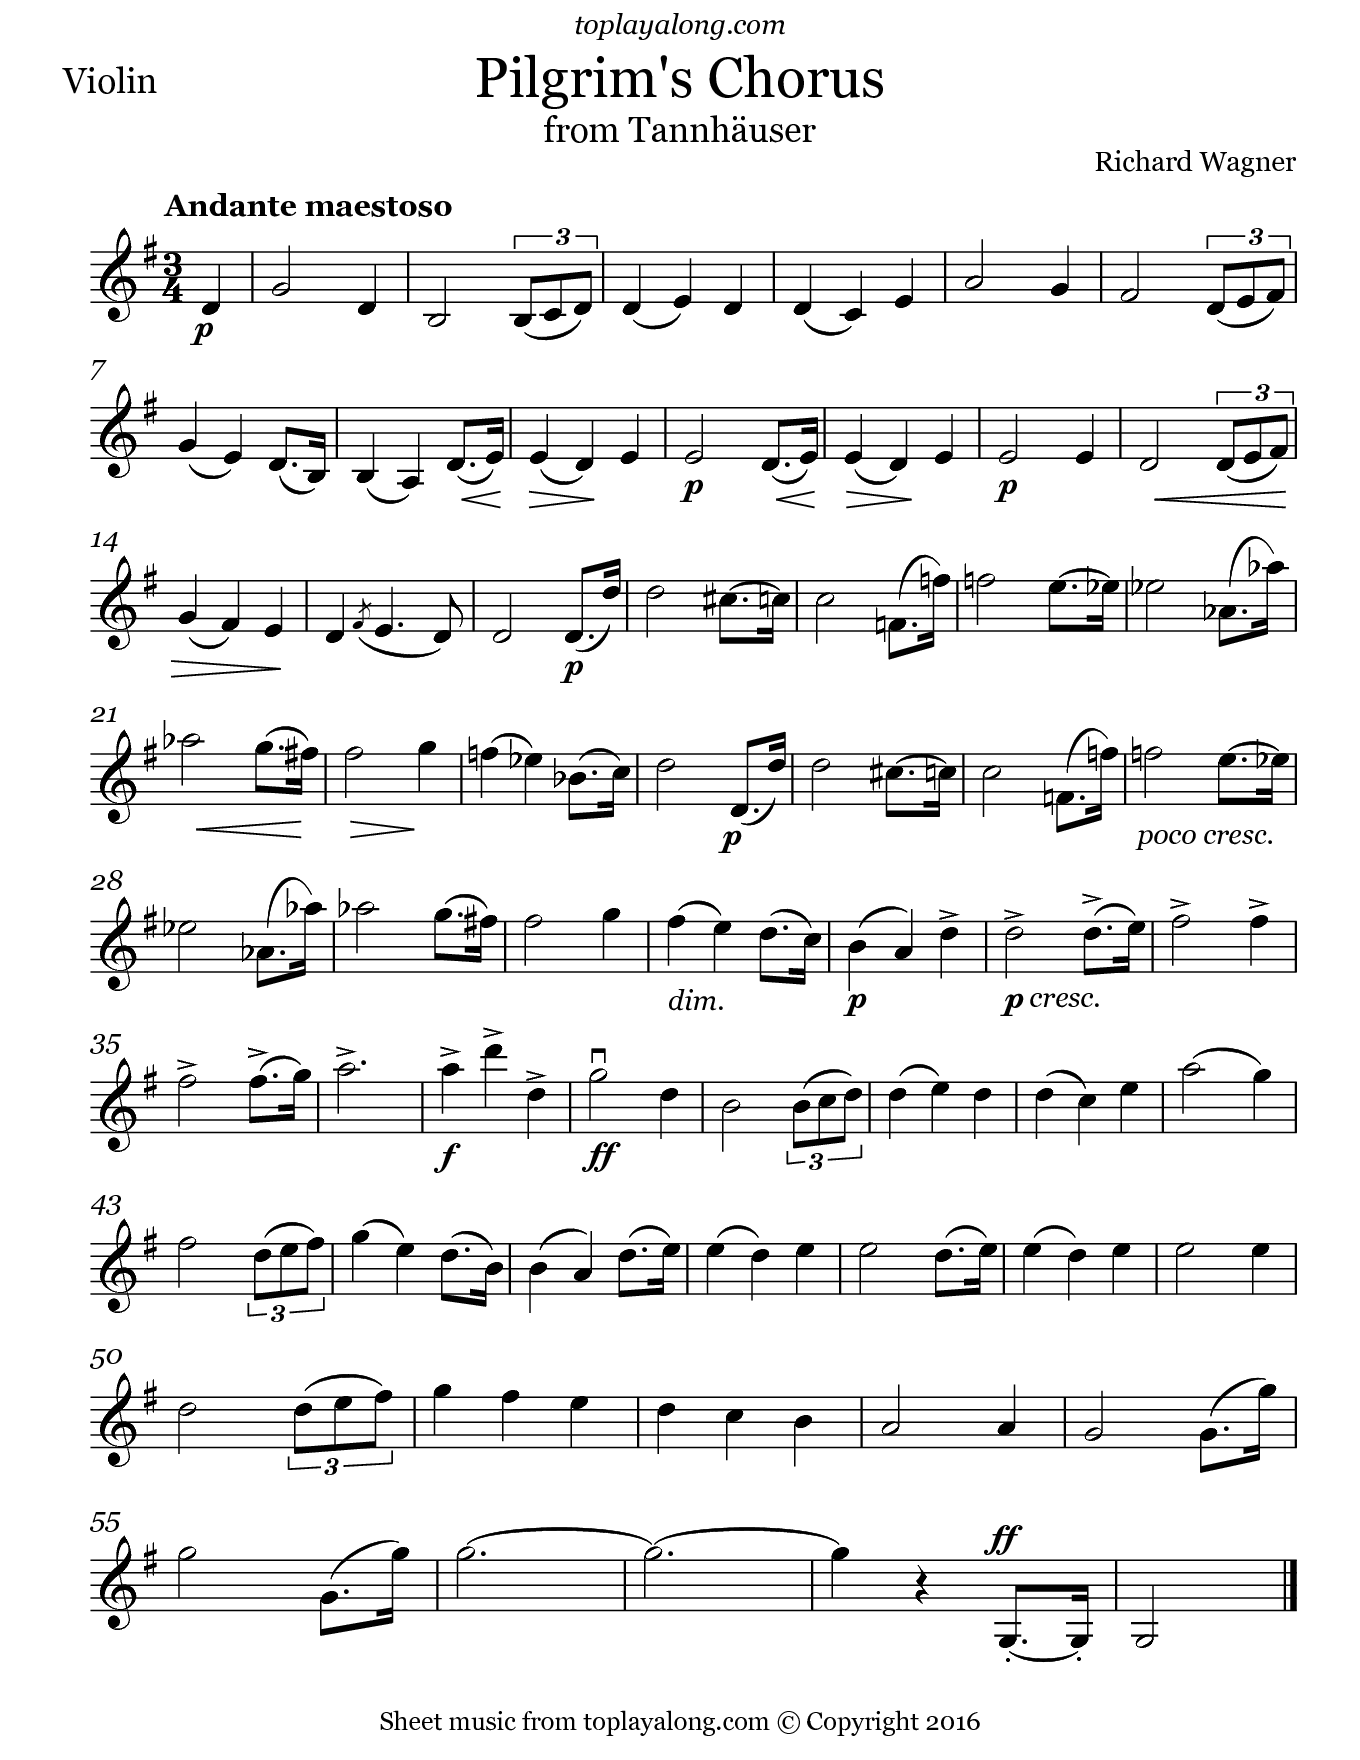 Pilgrim's Chorus from Tannhäuser by Wagner. Sheet music for Violin, page 1.